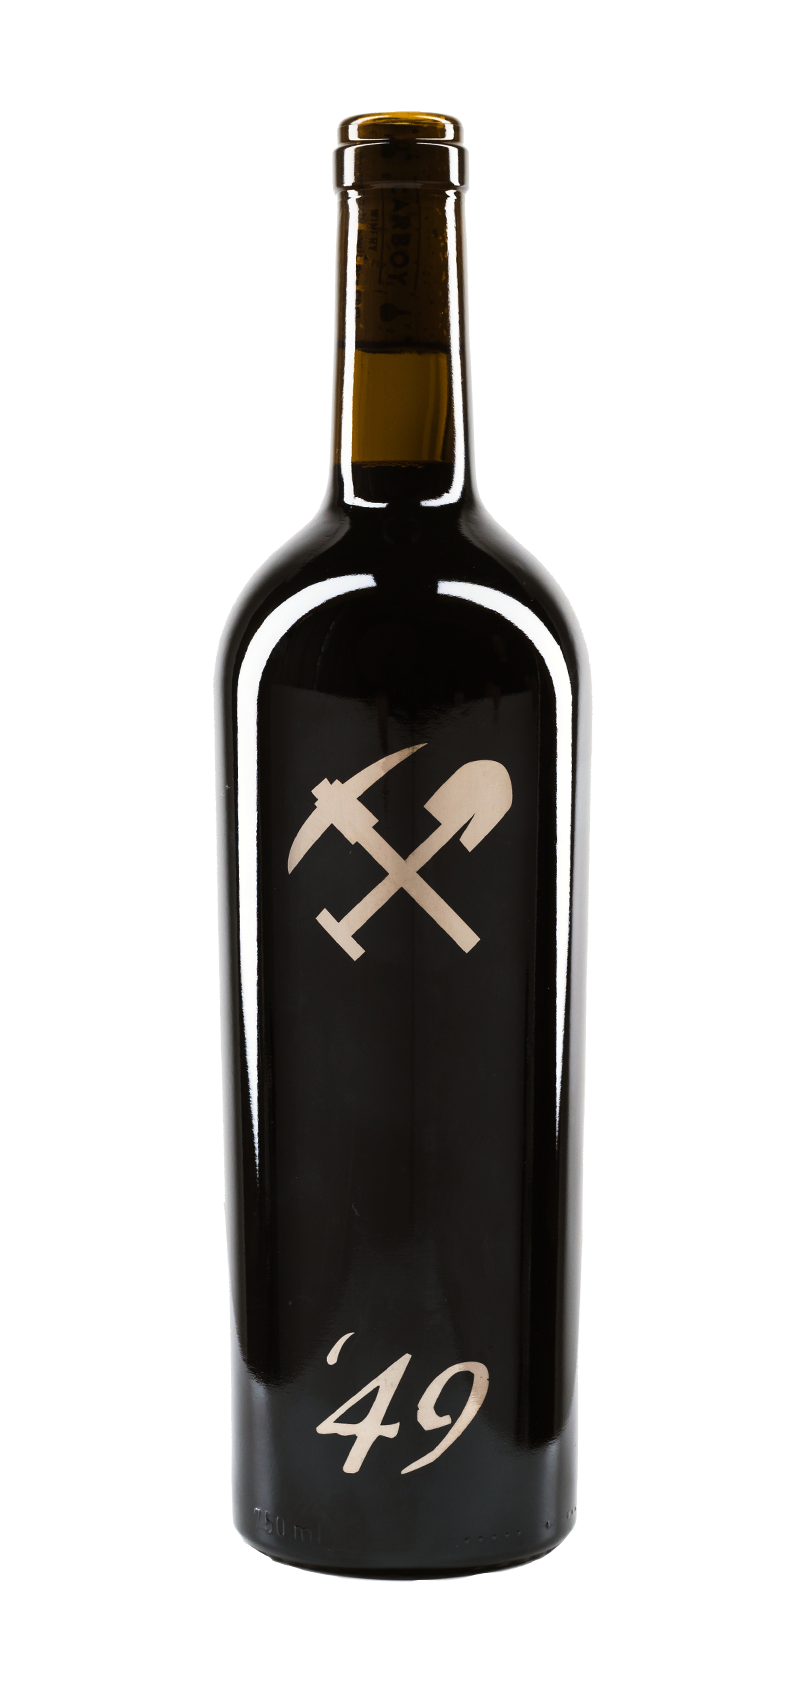 Bottle of Carboy Winery's Vin '49 Red Blend wine.